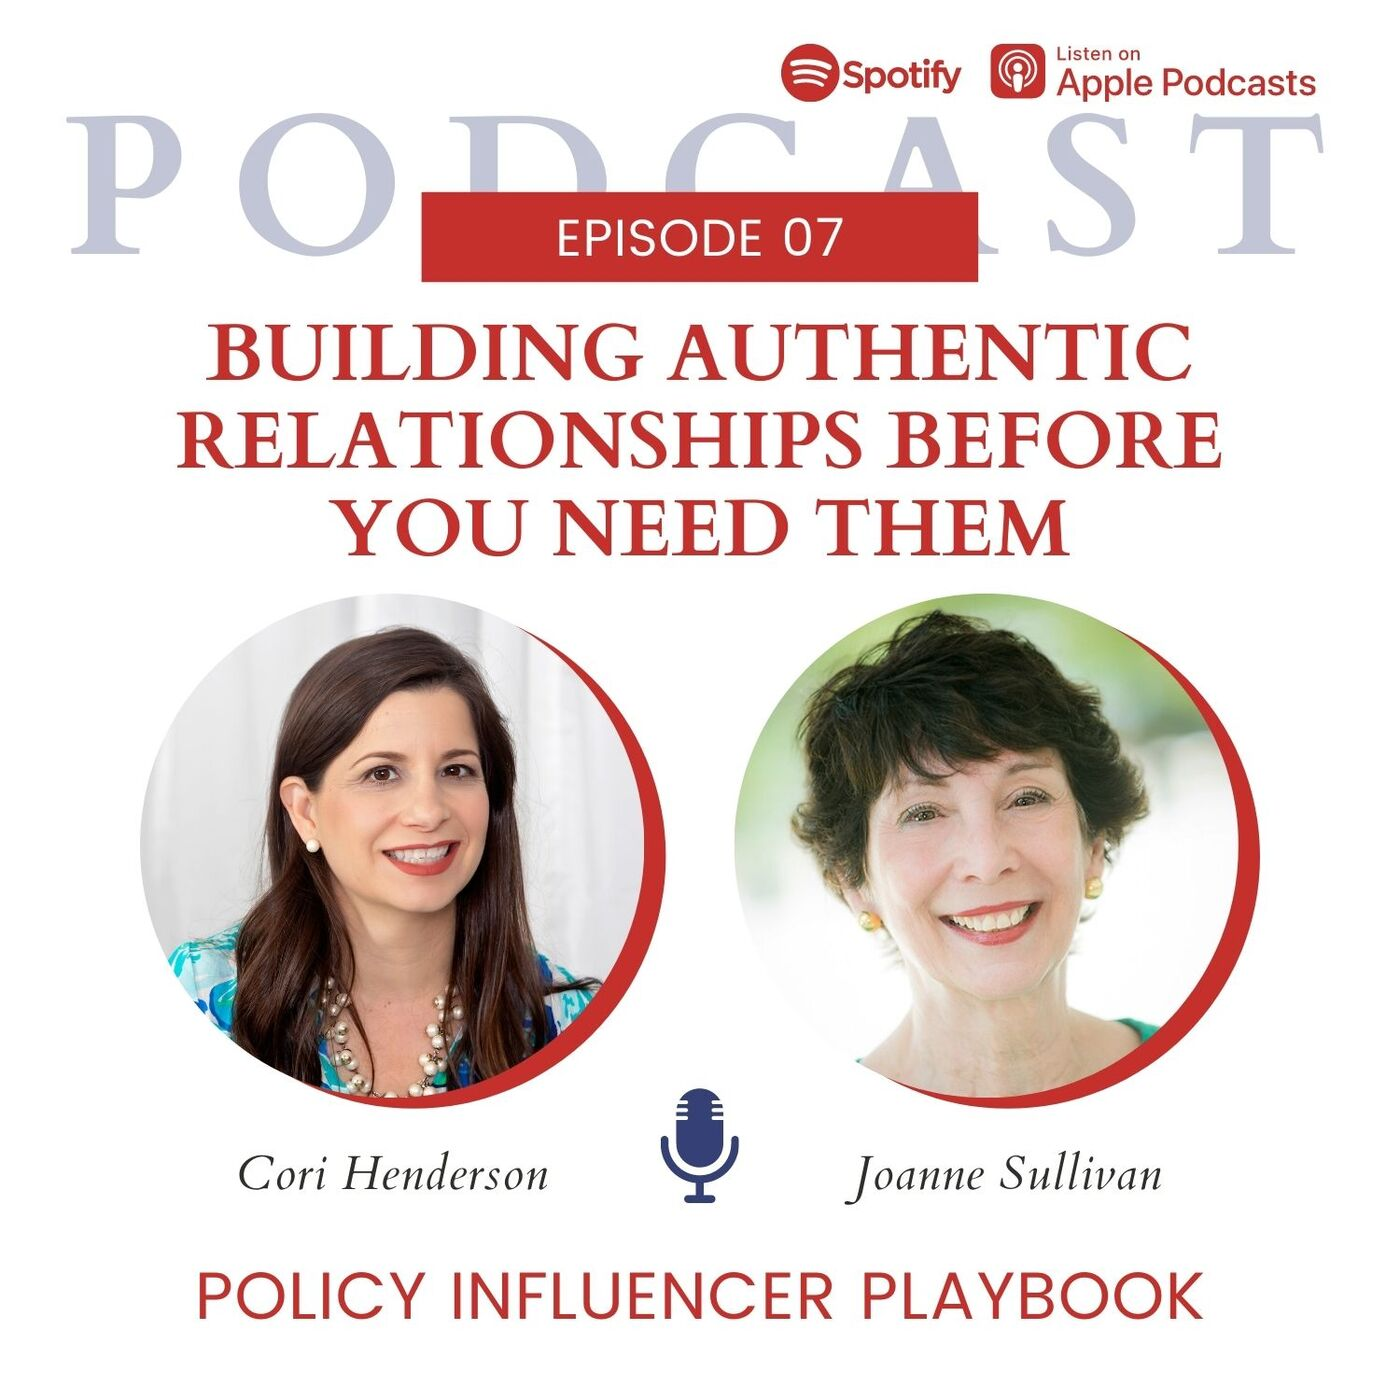 Building Authentic Relationships Before Your Need Them with Joanne Sullivan